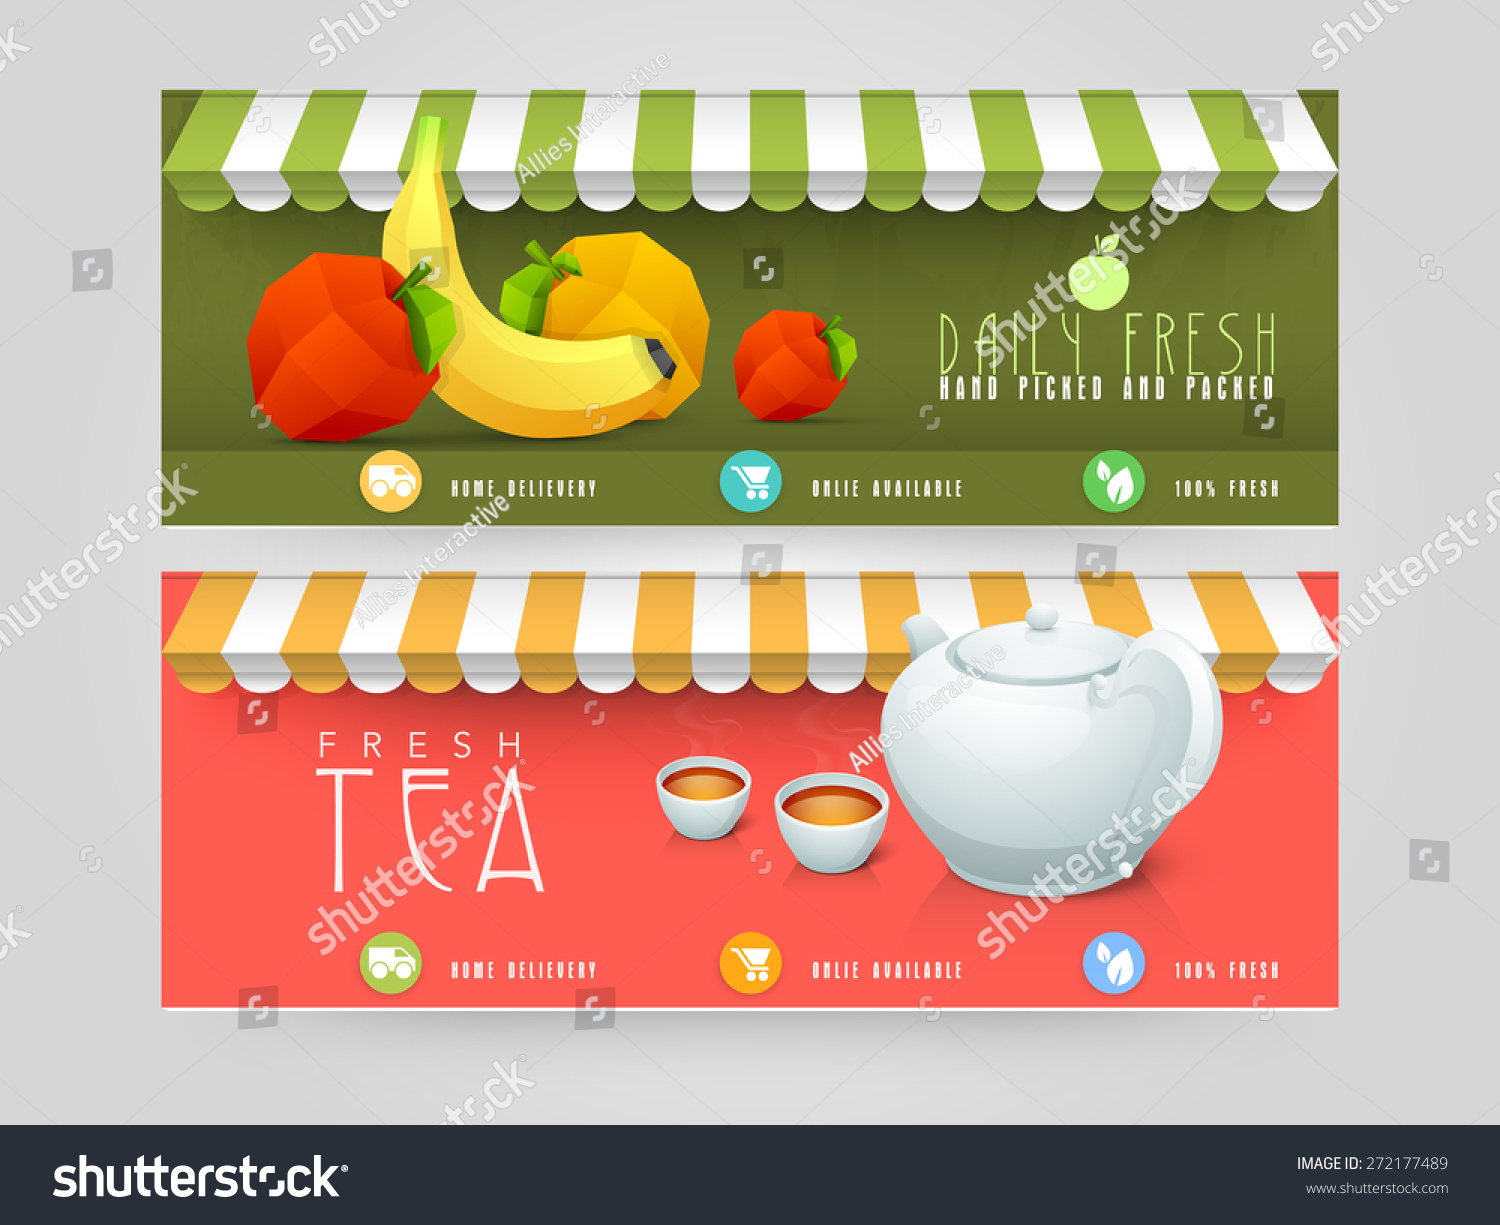 website header banner design restaurant cafe stock vector